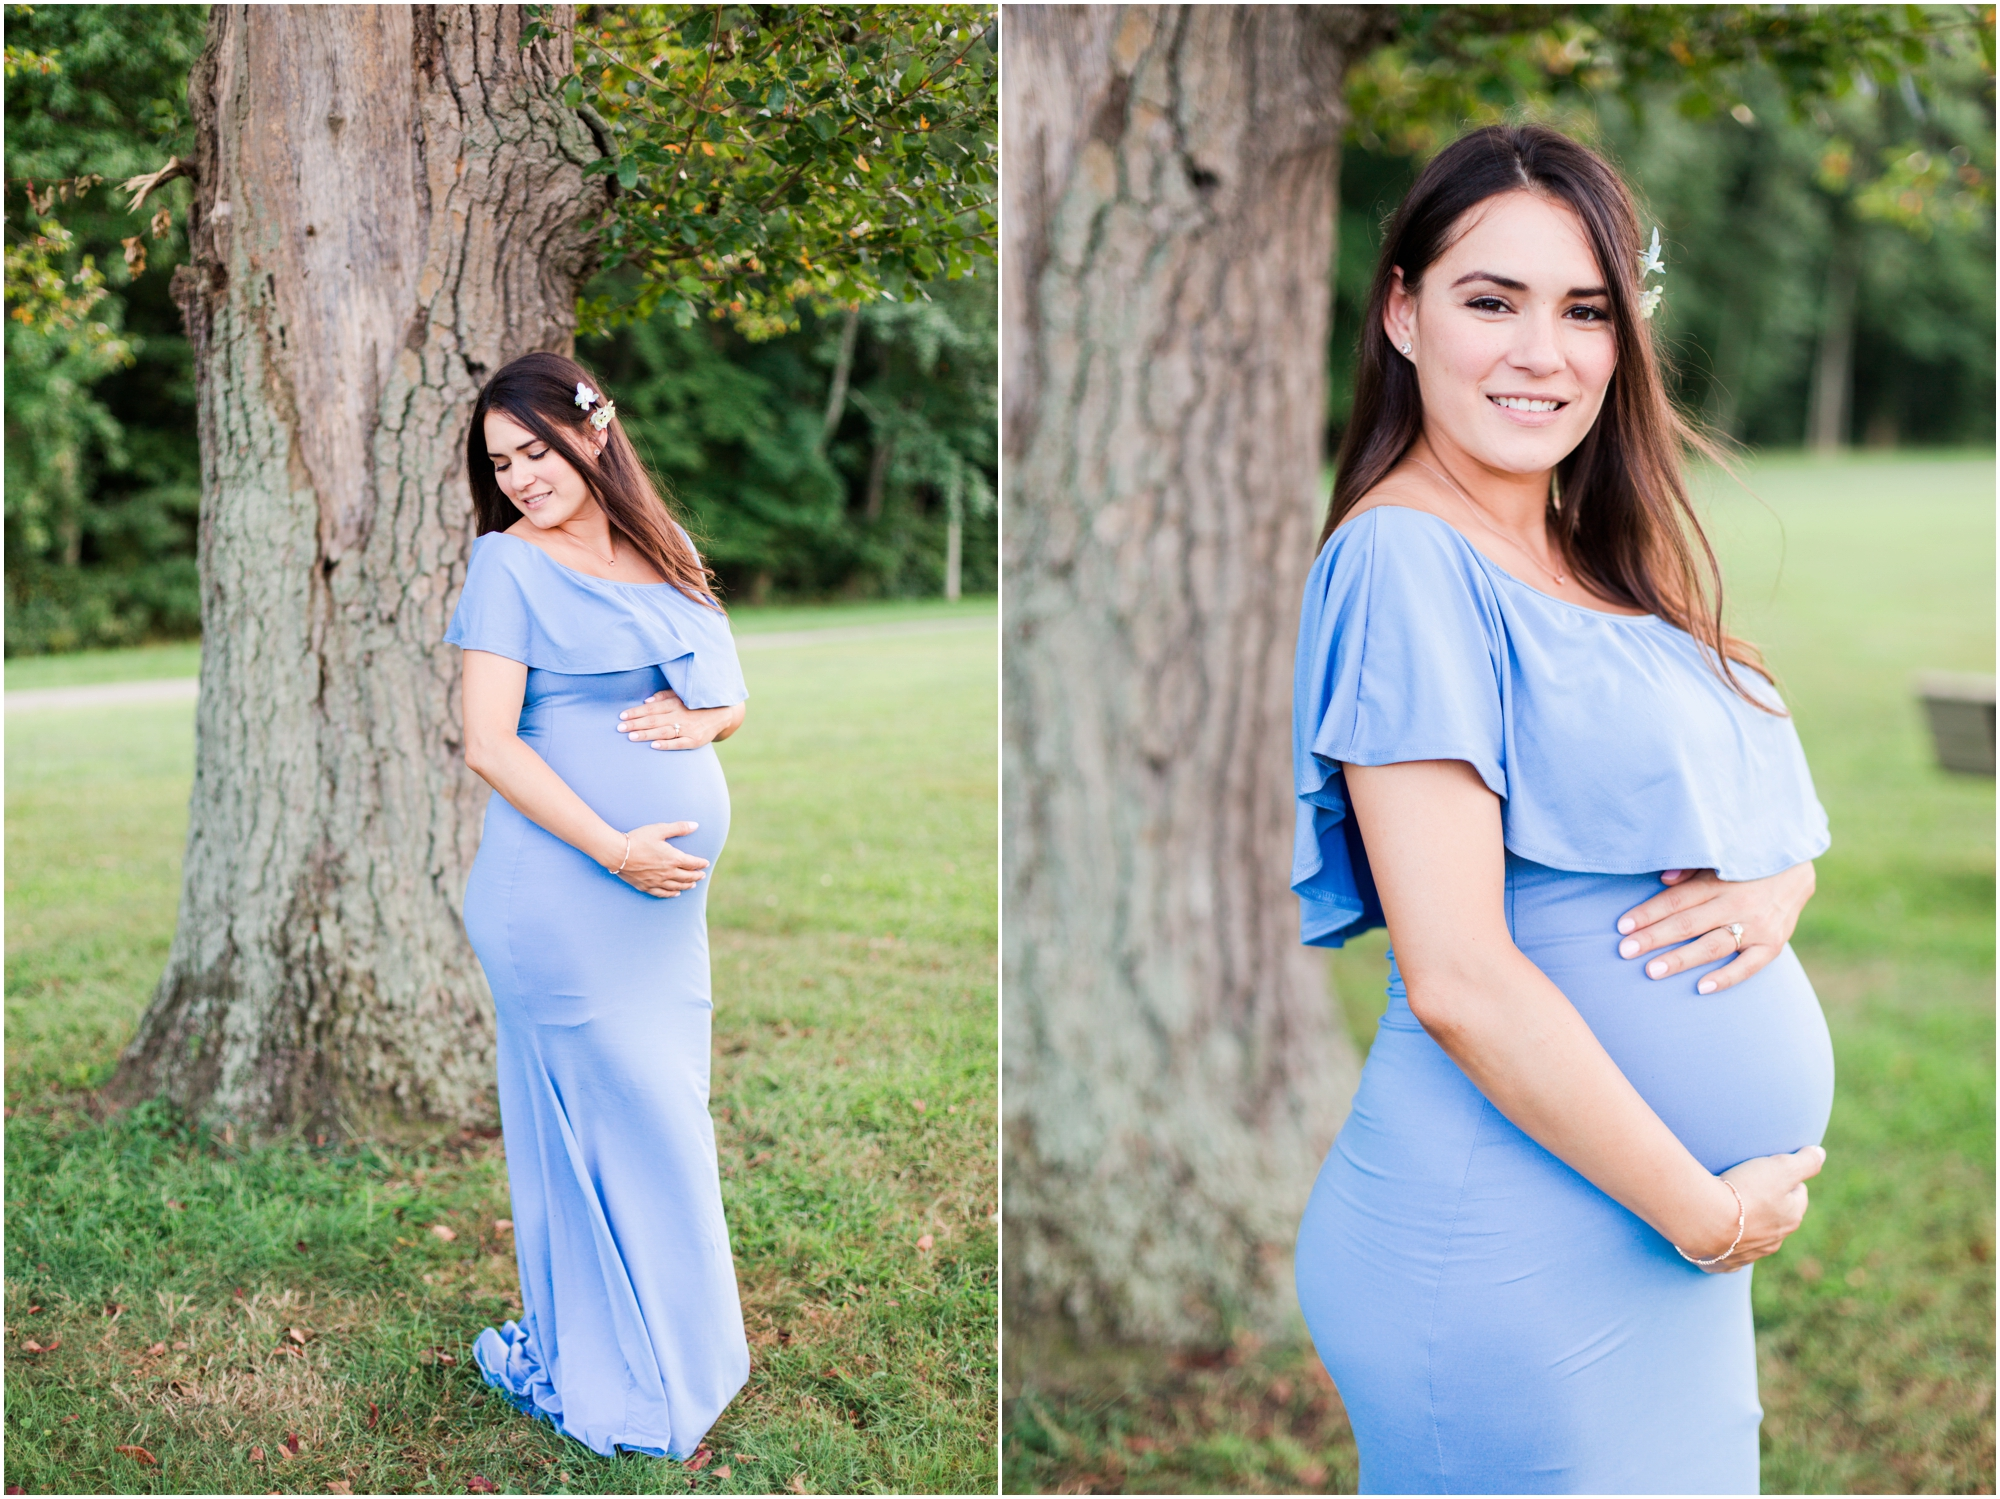 Natural light maternity portraits by Briana Calderon Photography based in the Greater Seattle & Tacoma, WA_0790.jpg